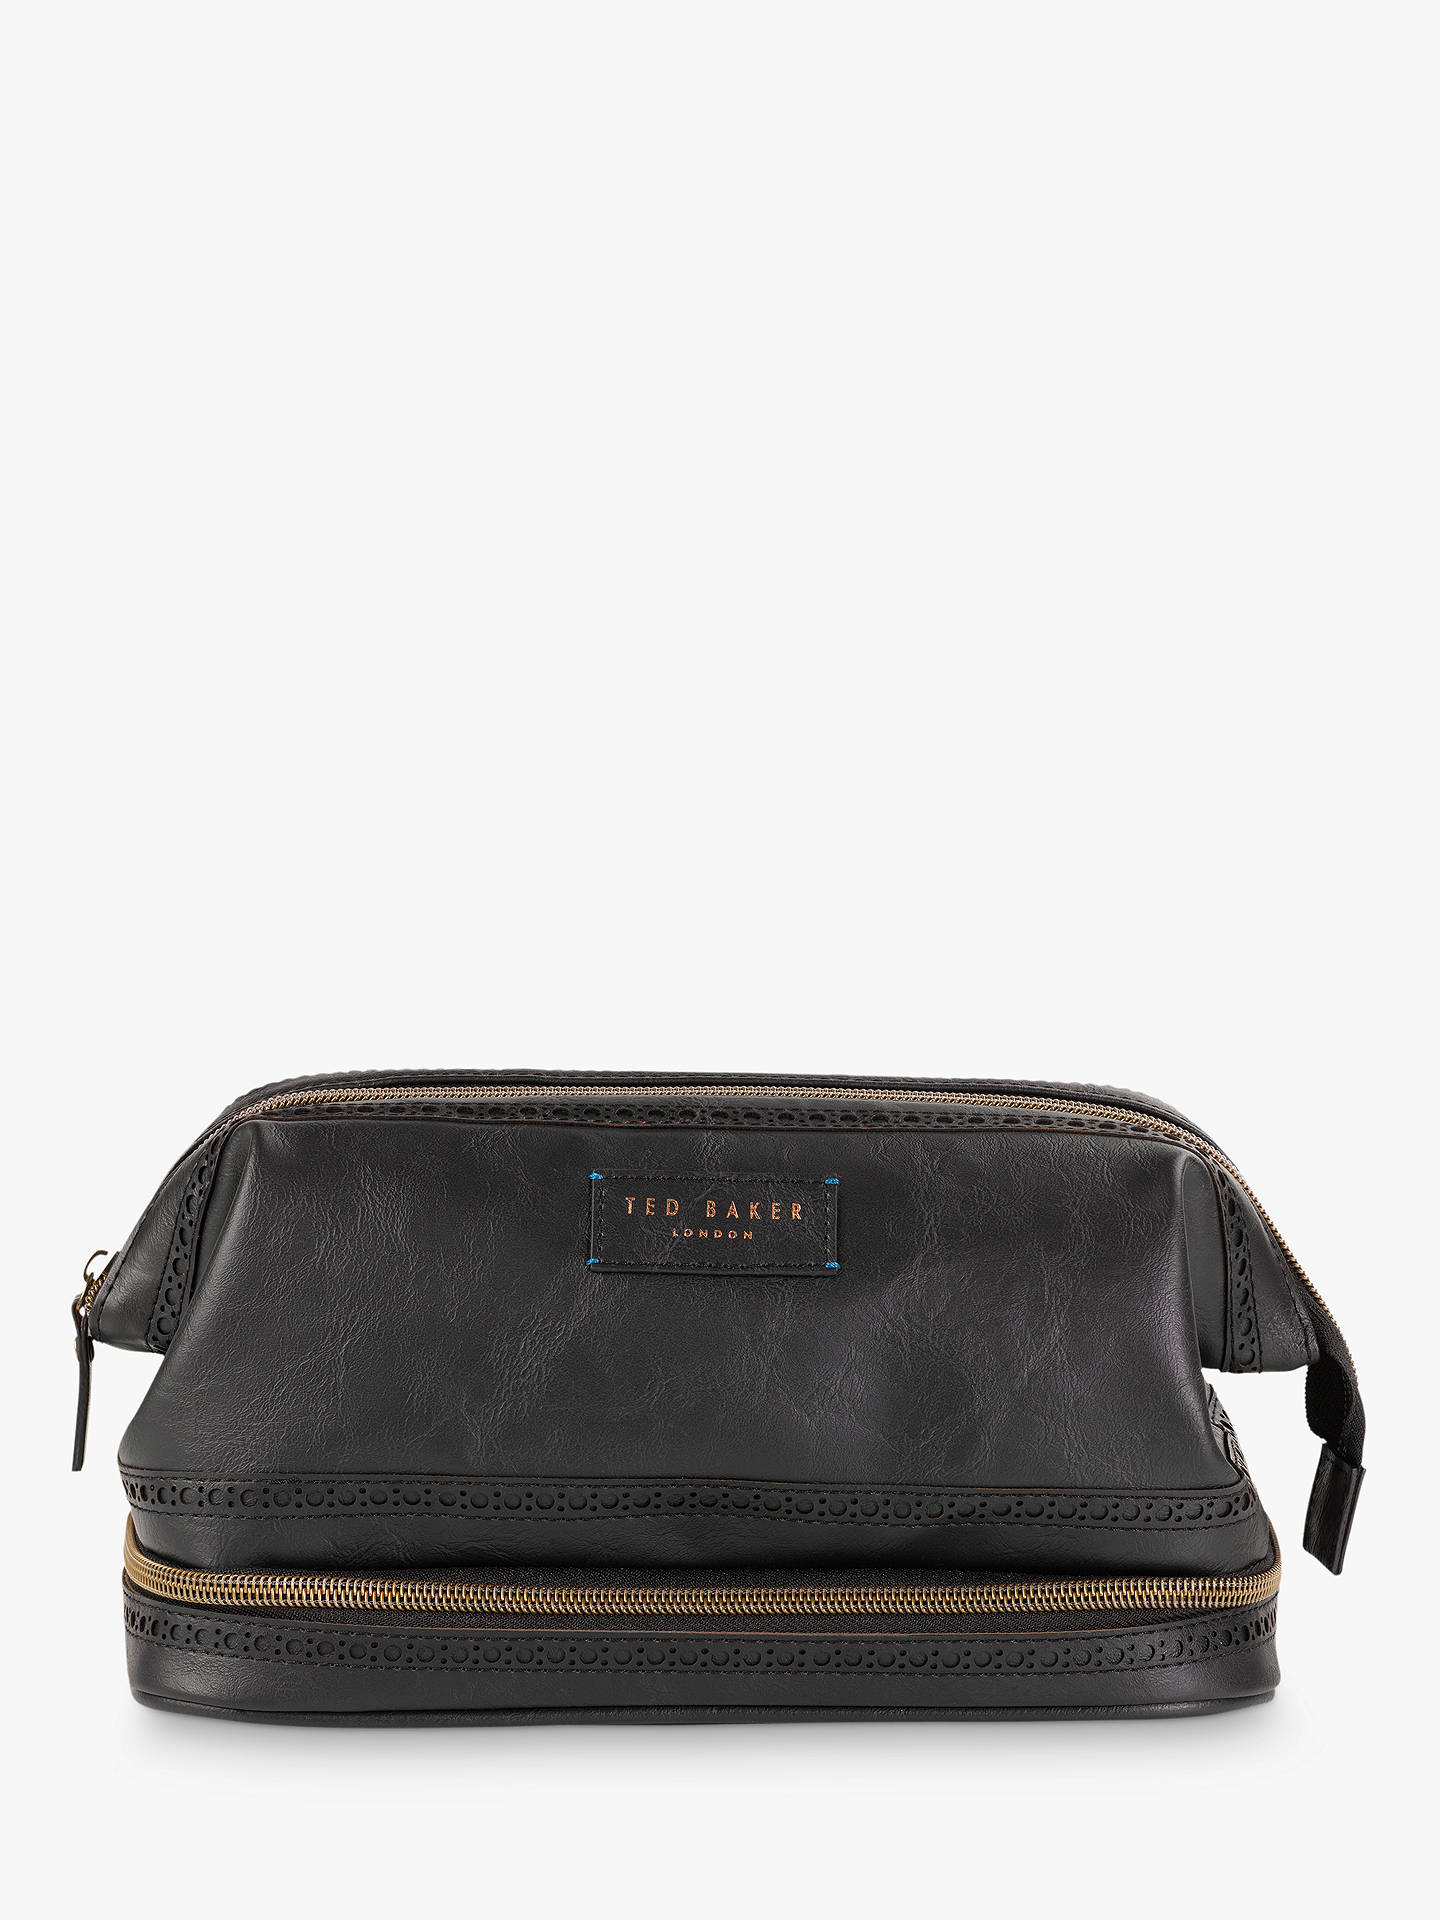 BuyTed Baker Cobbler Wash Bag Online at johnlewis.com